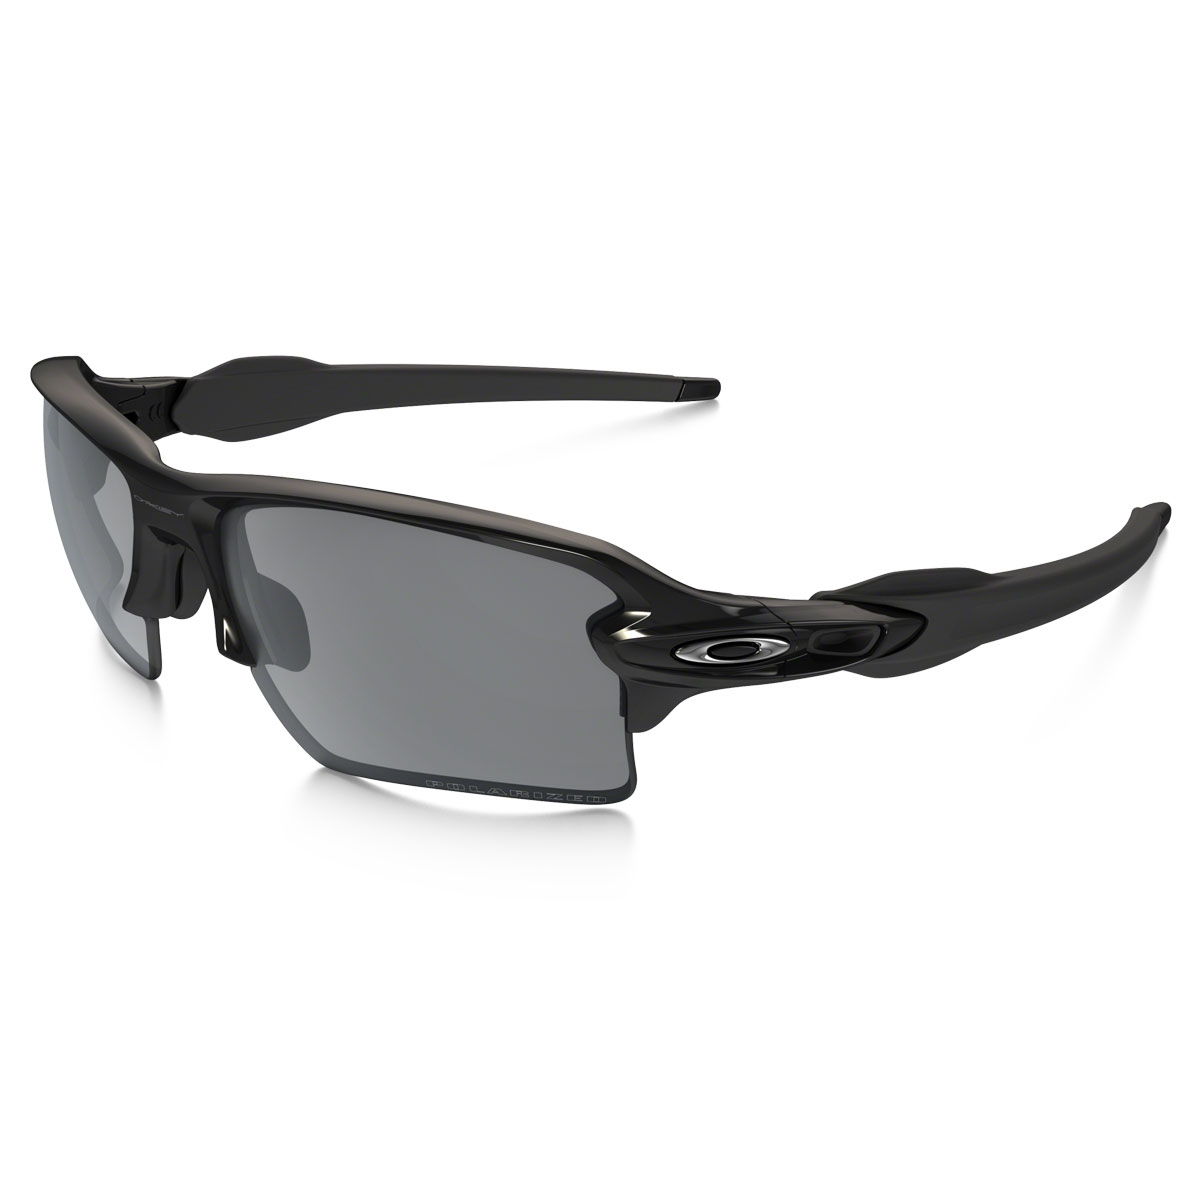 f58bafe7b6 Image of Oakley Flak 2.0XL Men s Polarized Sunglasses - Polished Black    Black Iridium Polarized